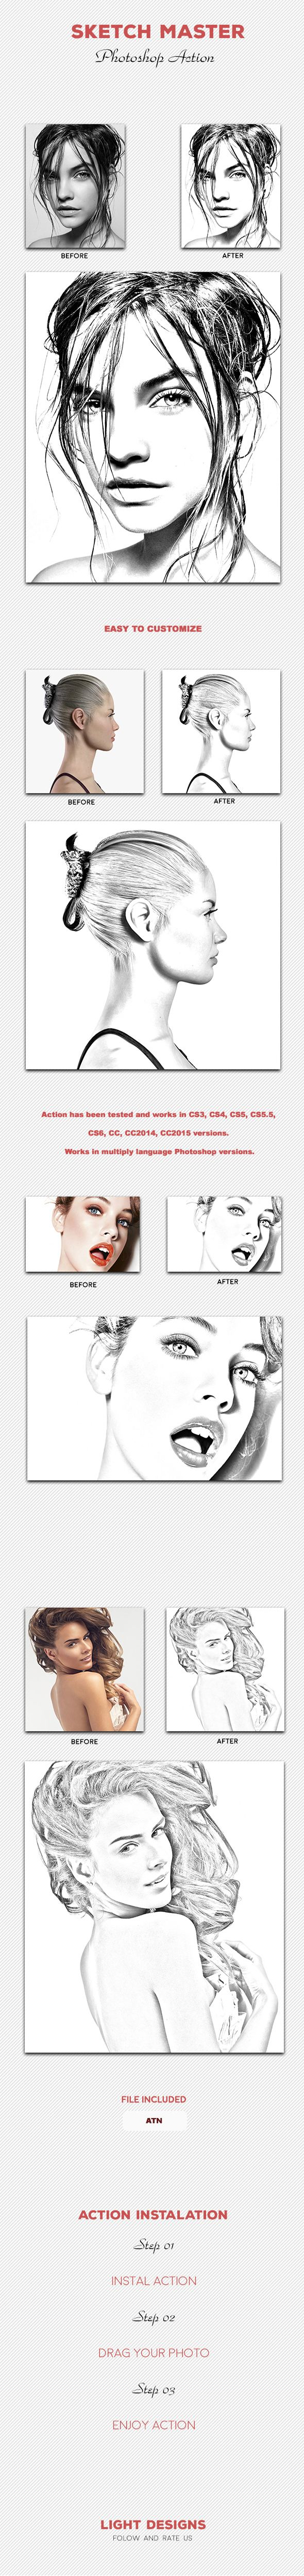 Sketch Master - Photoshop Action. Download here: http://graphicriver.net/item/sketch-master-photoshop-action-03/15970140?ref=ksioks